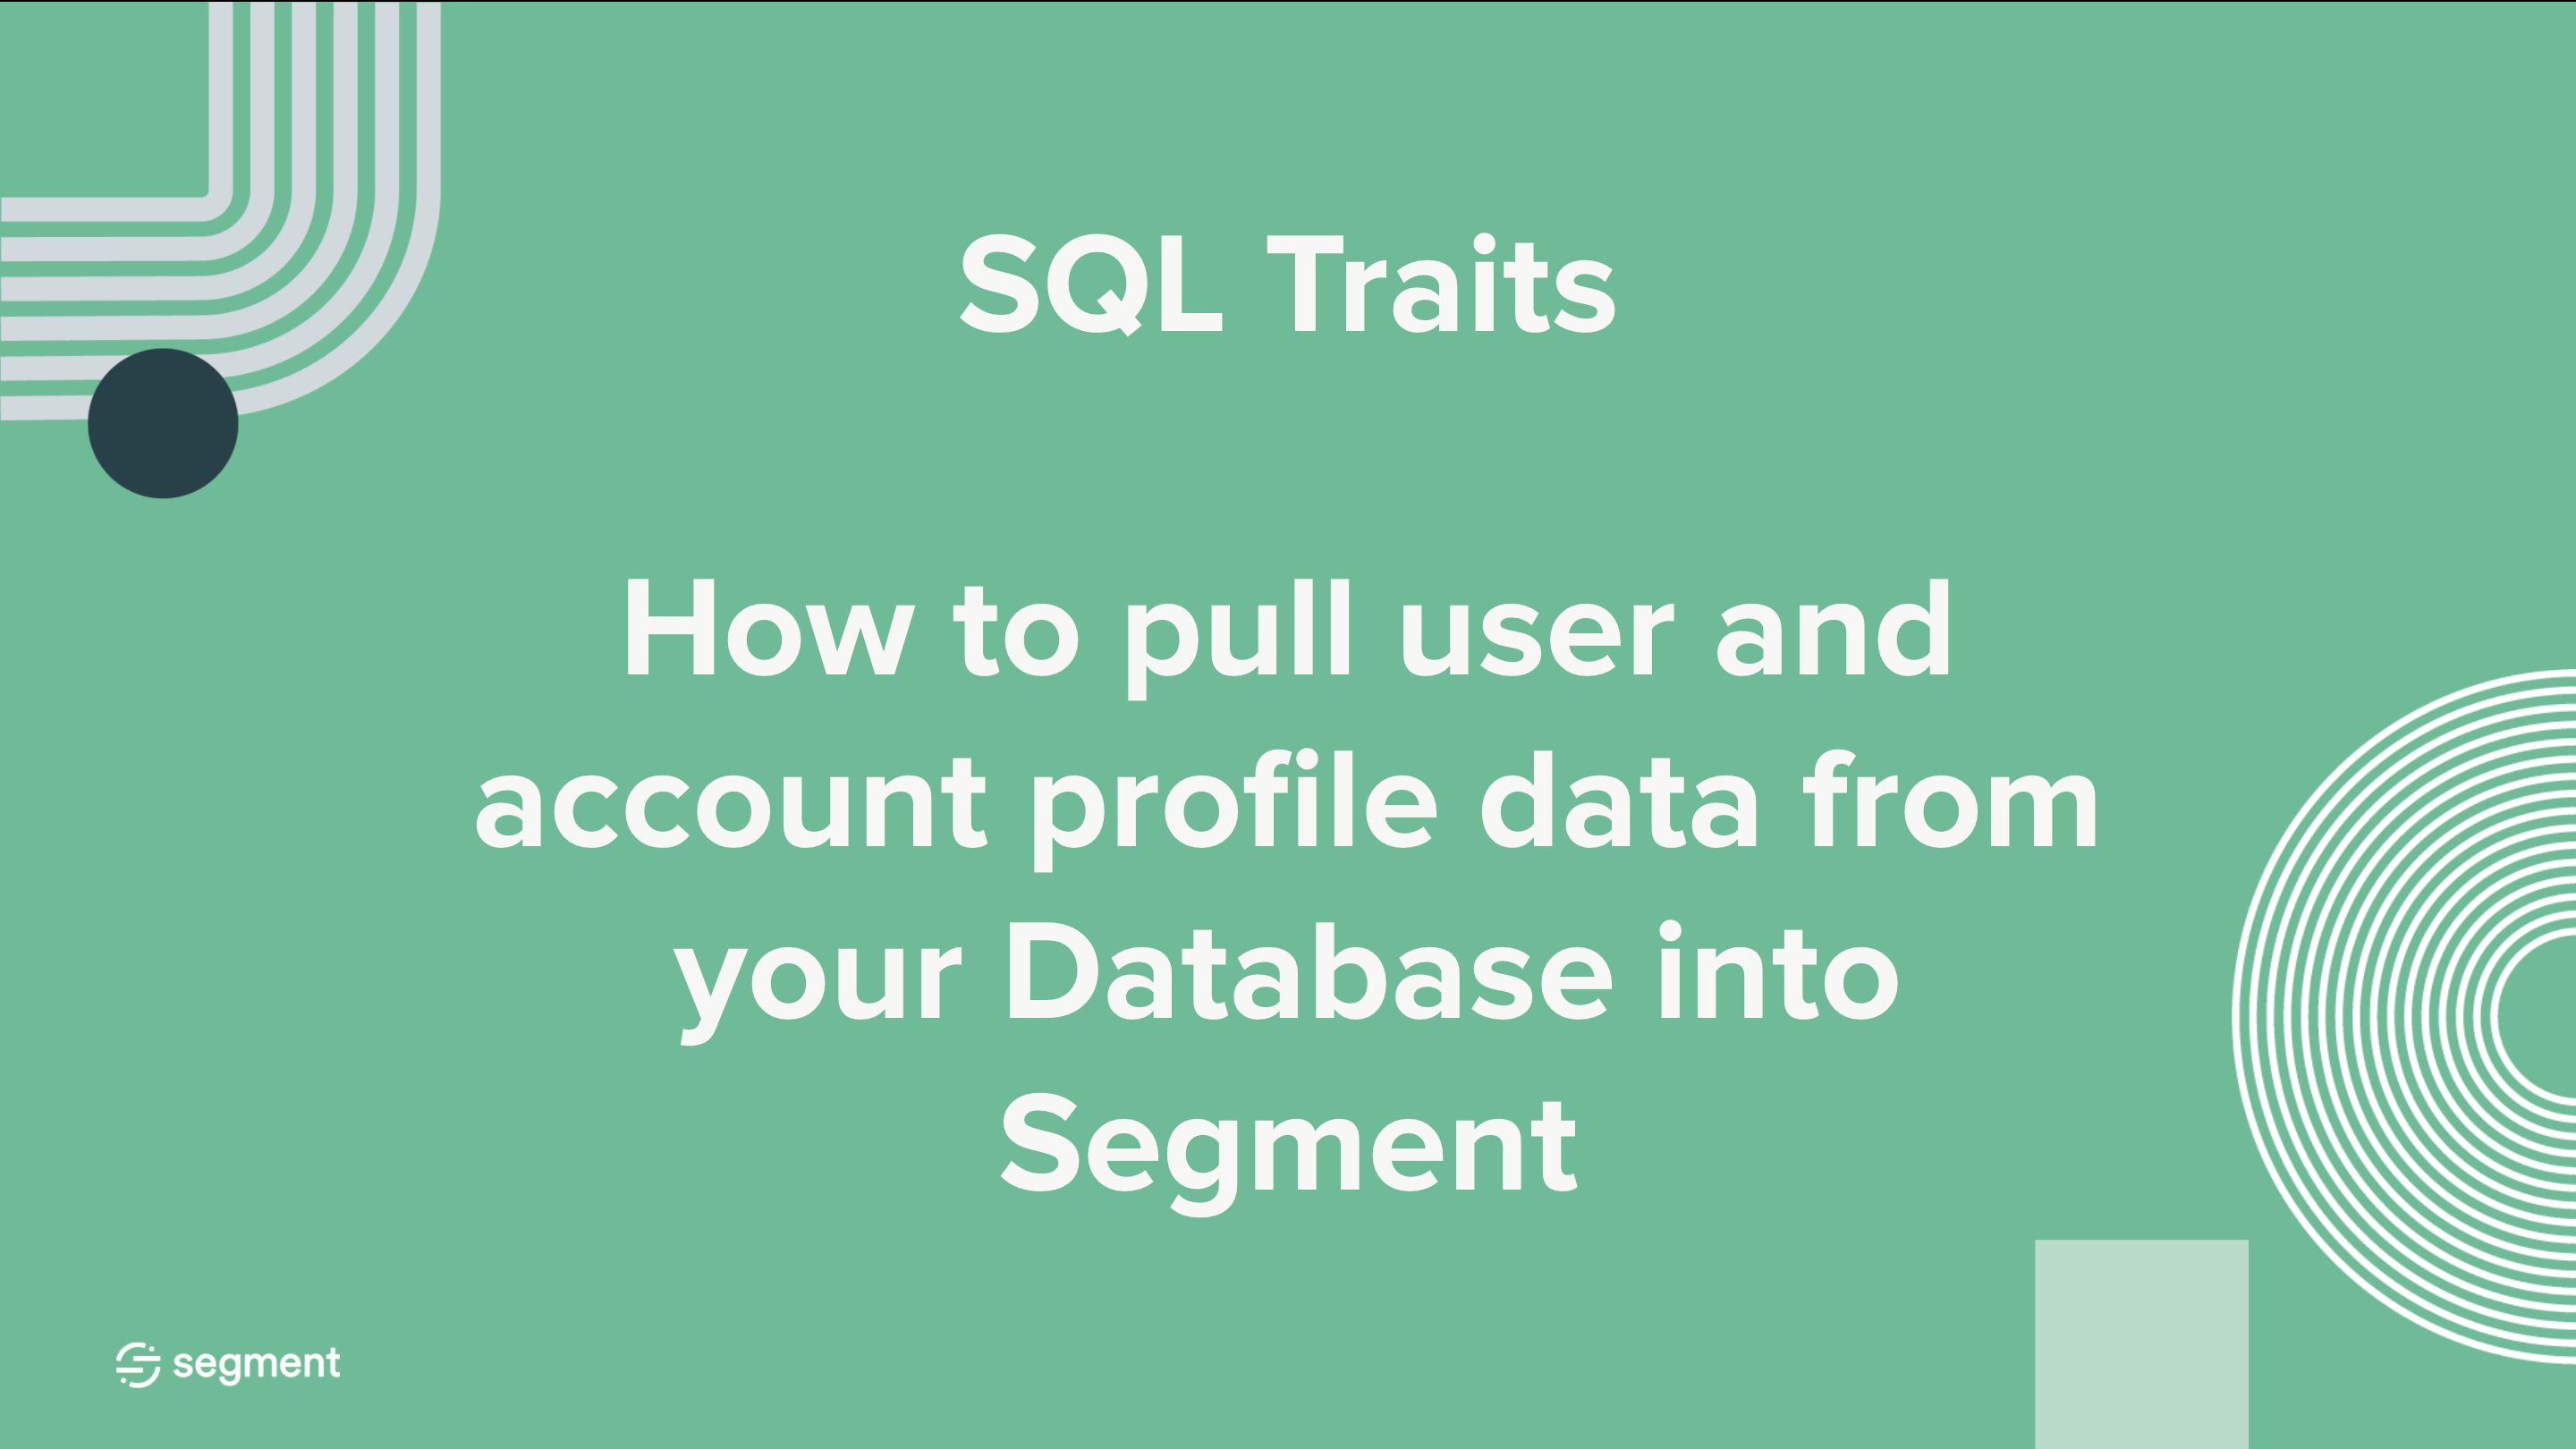 SQL Traits Course